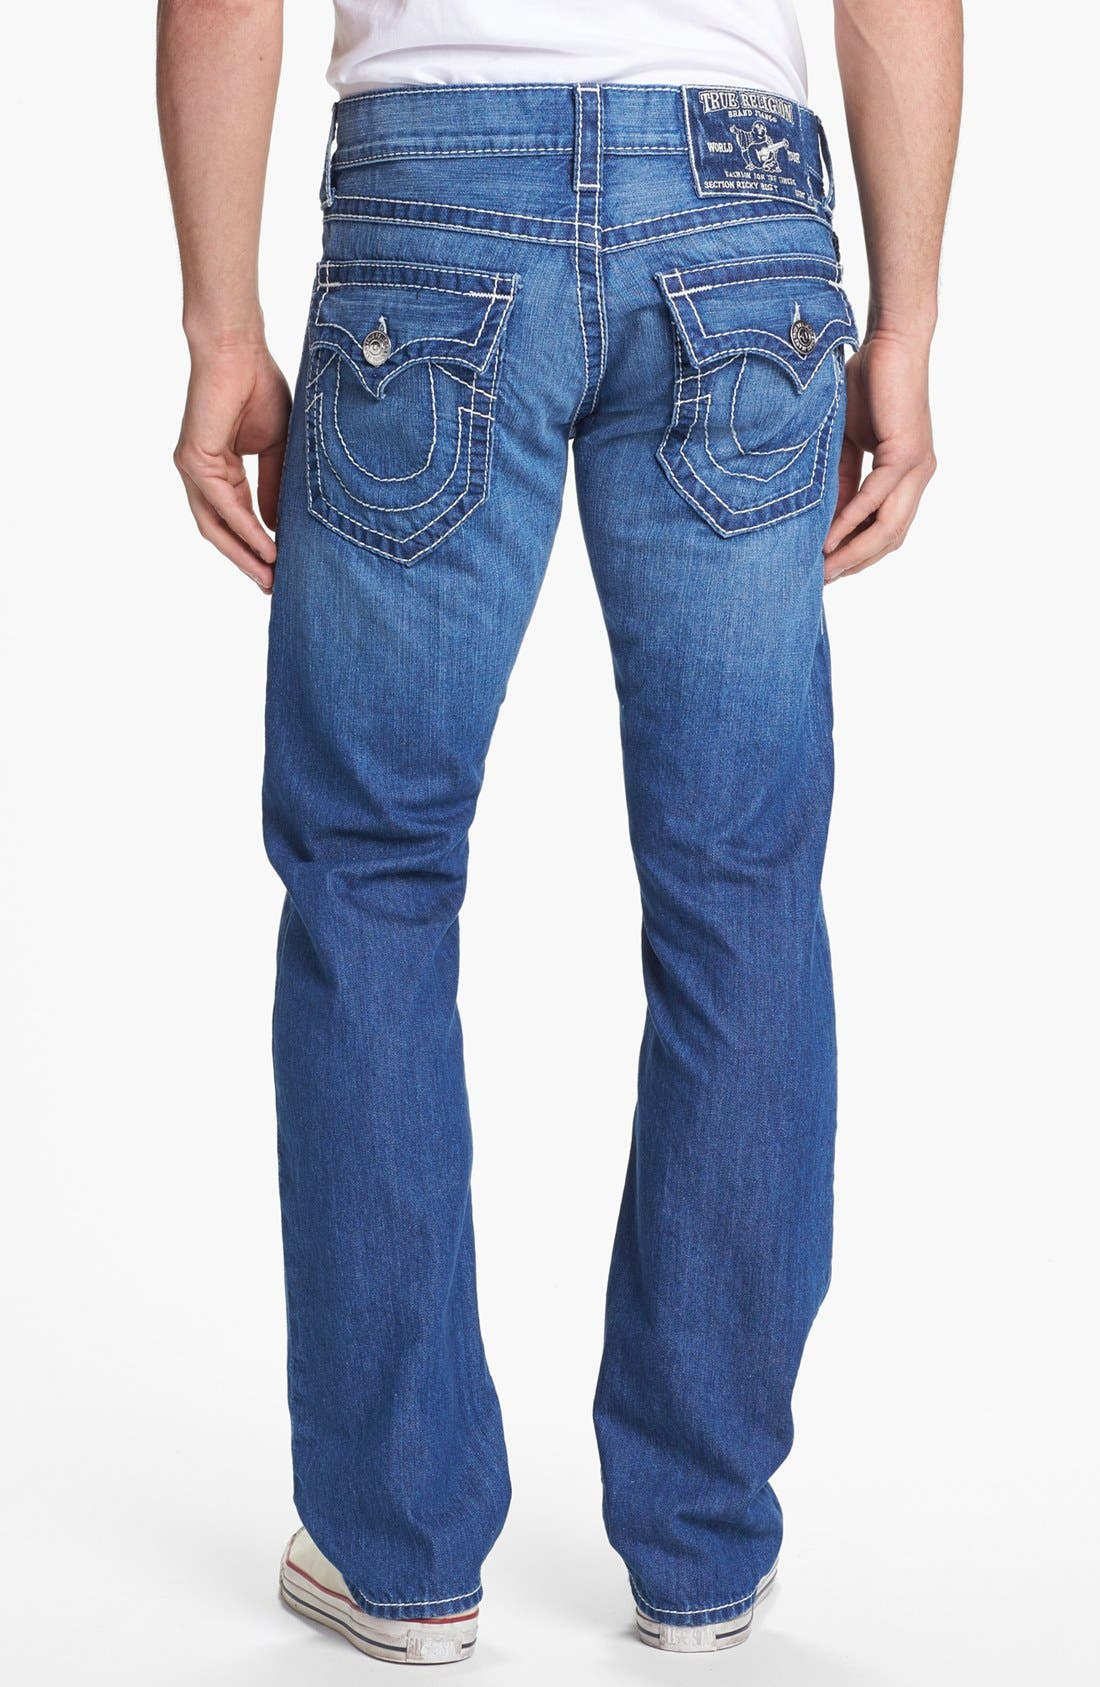 Alternate Image 1 Selected - True Religion Brand Jeans 'Ricky' Straight Leg Jeans (Voyager)